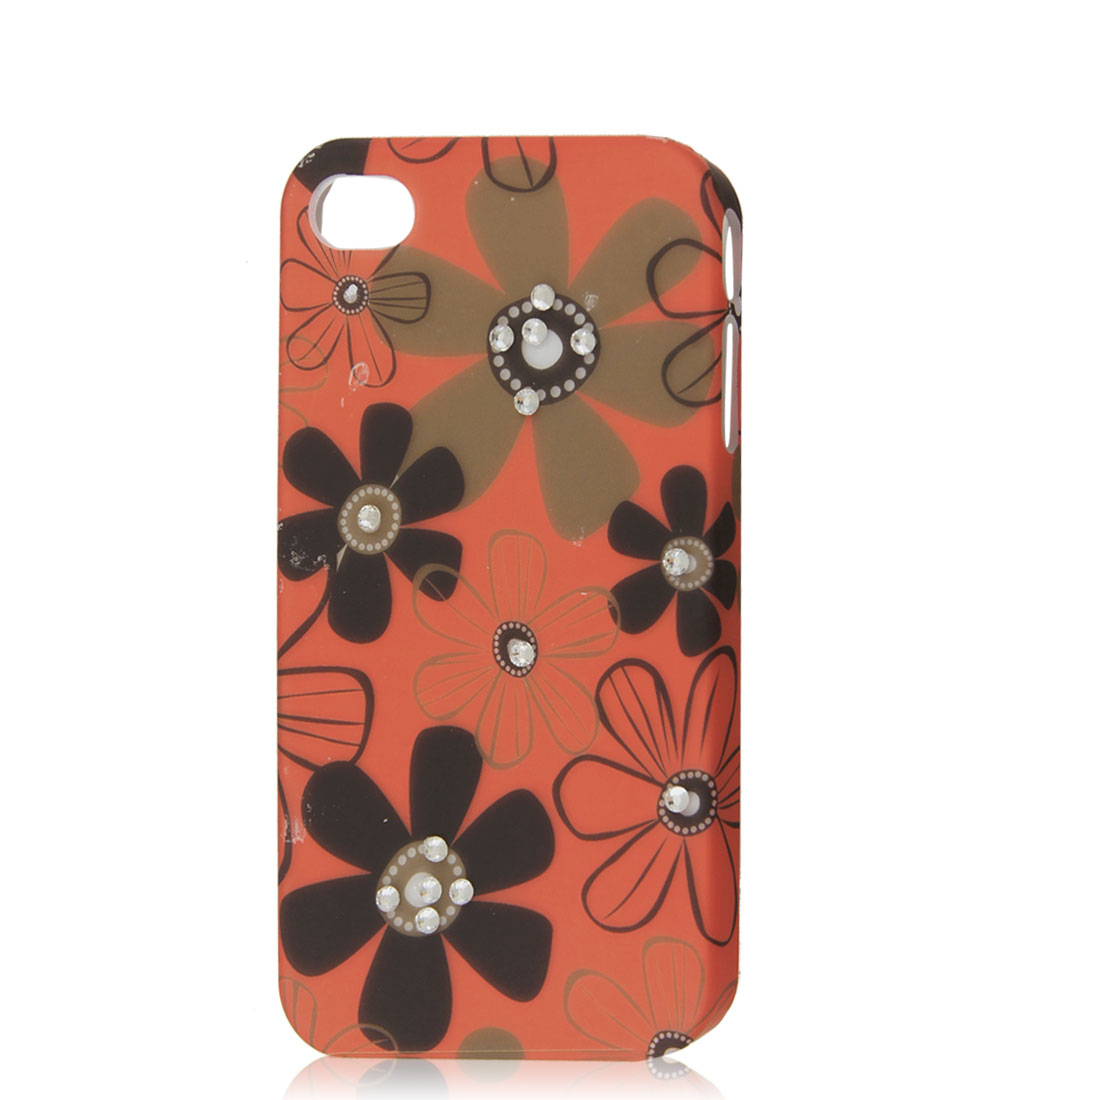 Orange Red Rhinestone Flower Protective Hard Back Case Cover Skin for iPhone 4 4G